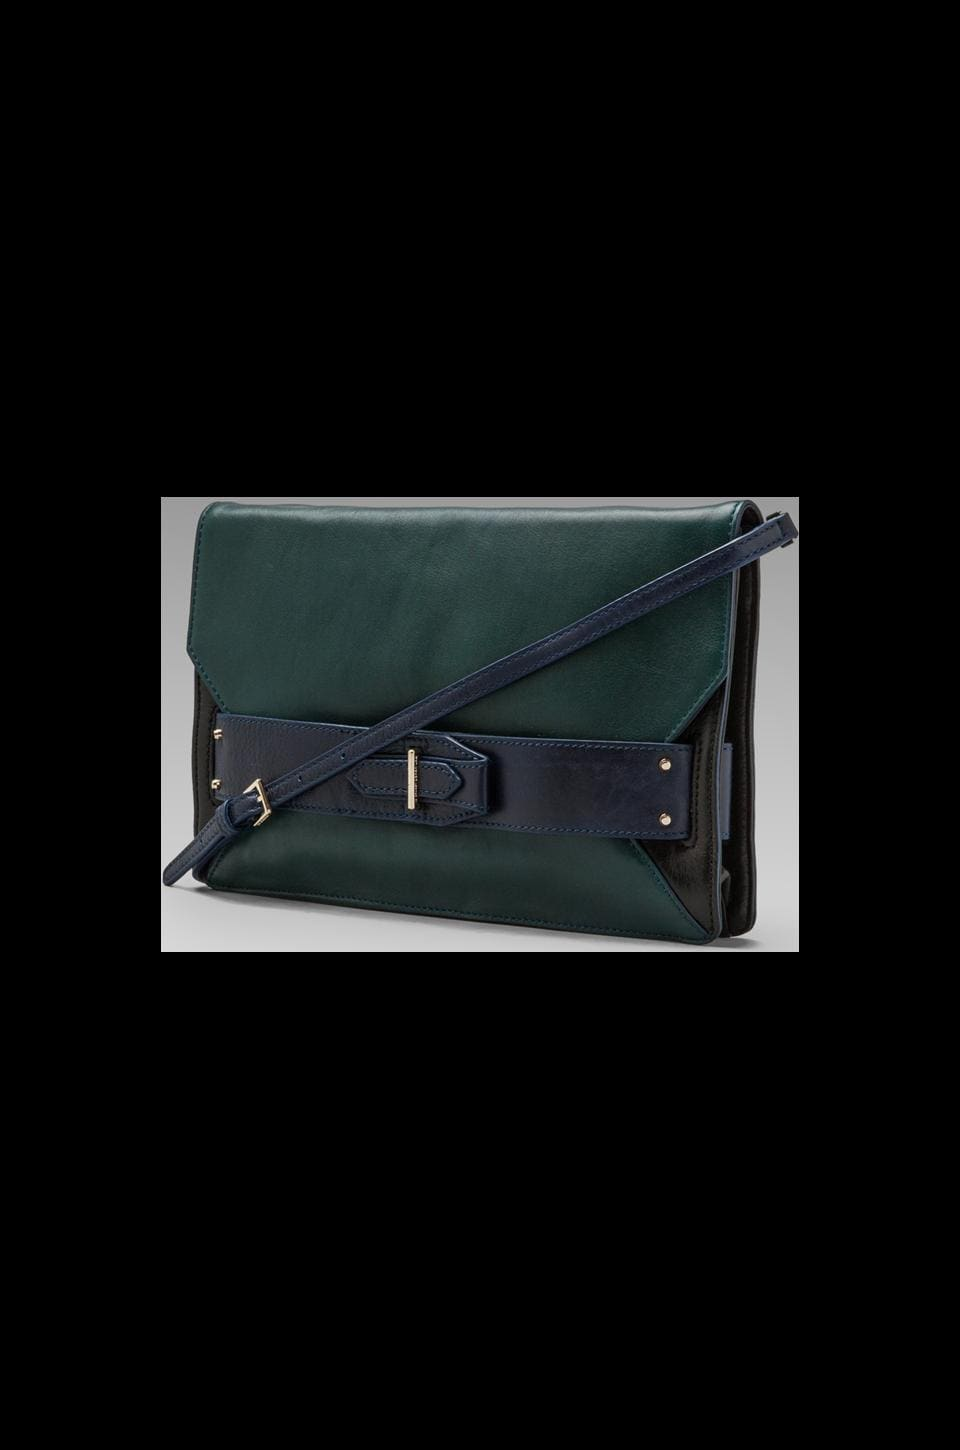 DEREK LAM 10 CROSBY Colorblock Folio Clutch in Petrol/Navy/Black